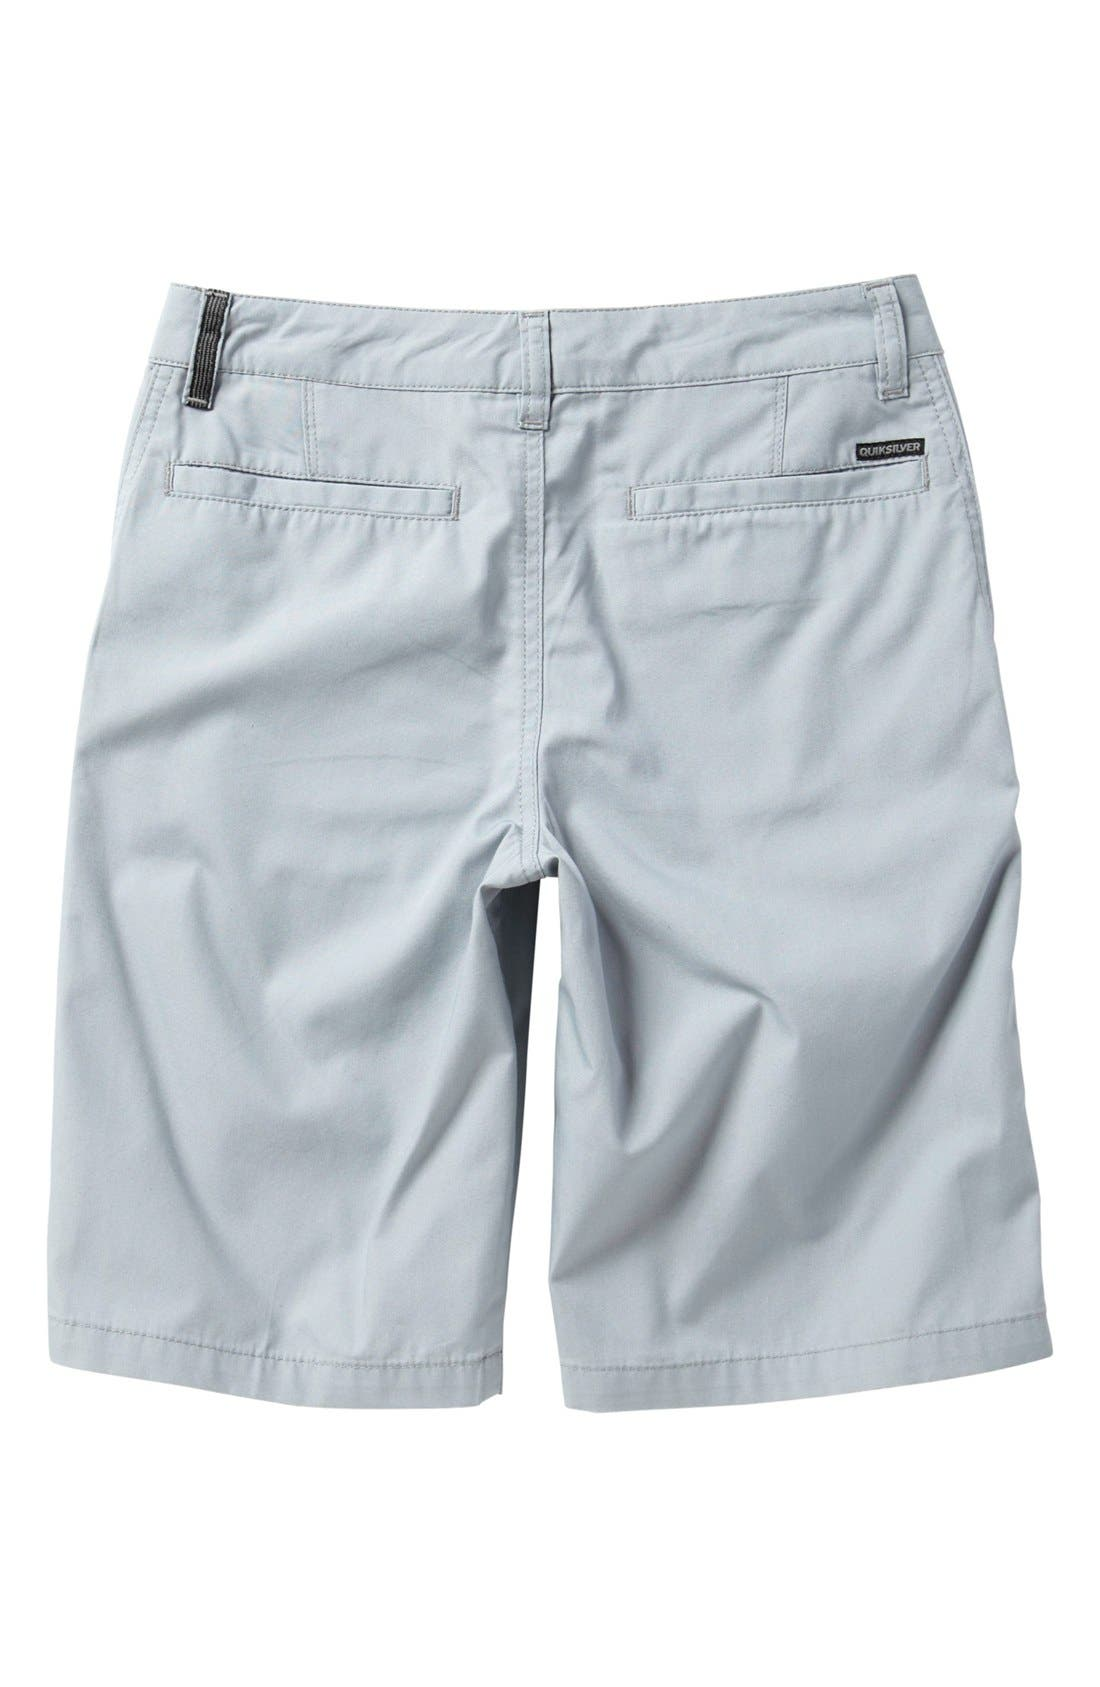 Alternate Image 2  - Quiksilver 'Rockefeller' Shorts (Big Boys)